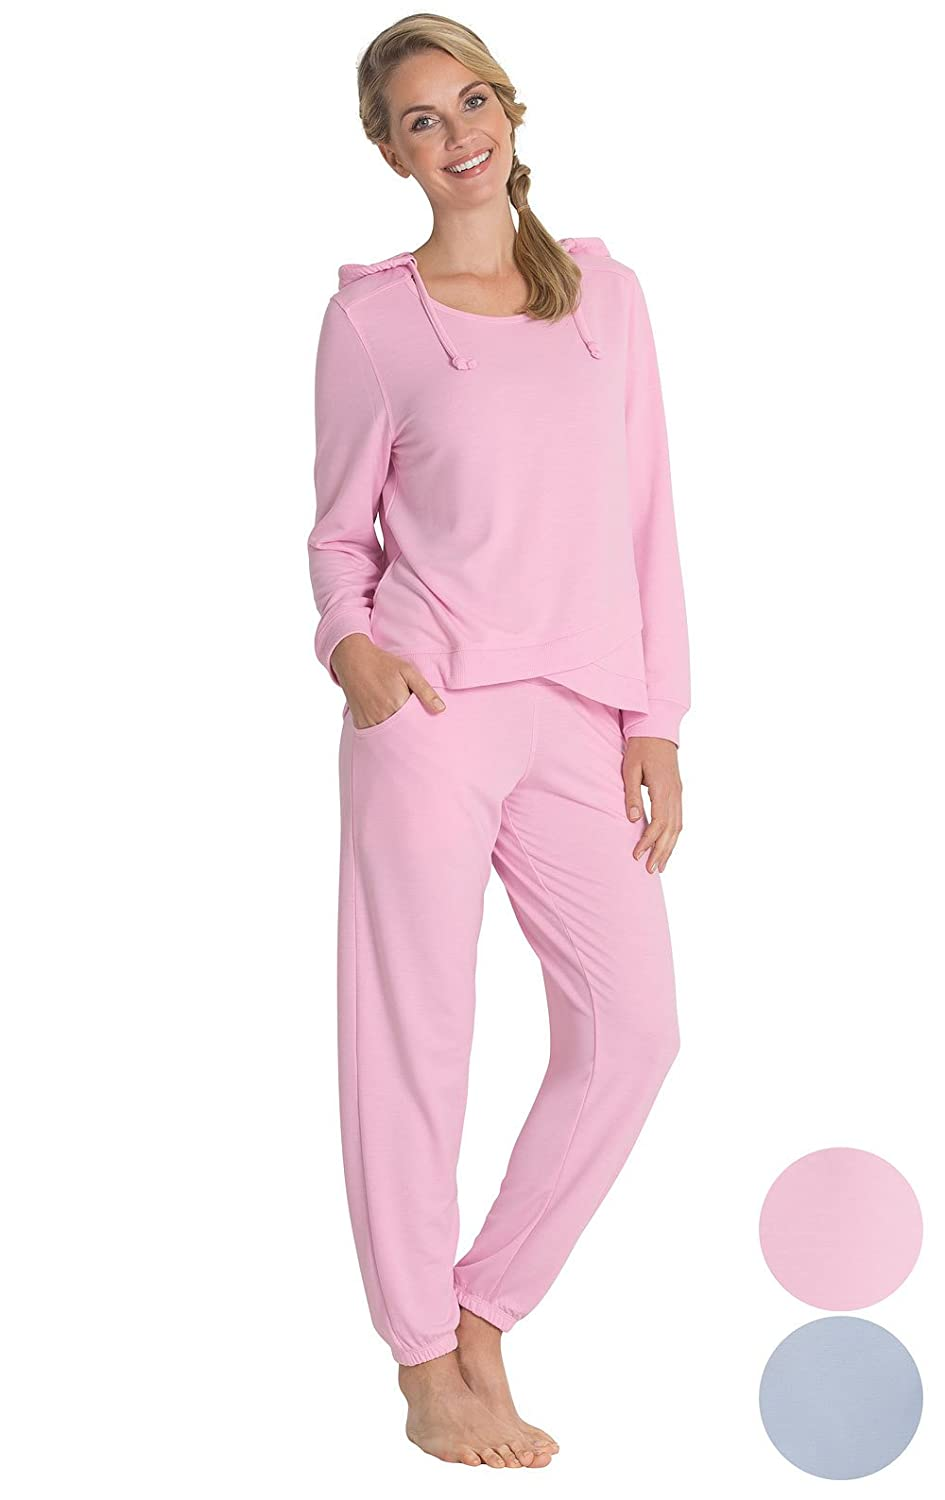 SUPER-SOFT PAJAMAS - It s so annoying when PJs FEEL LIKE CASHMERE out of  the box but turn into something closer to steel wool after the first wash   ... be1575b49